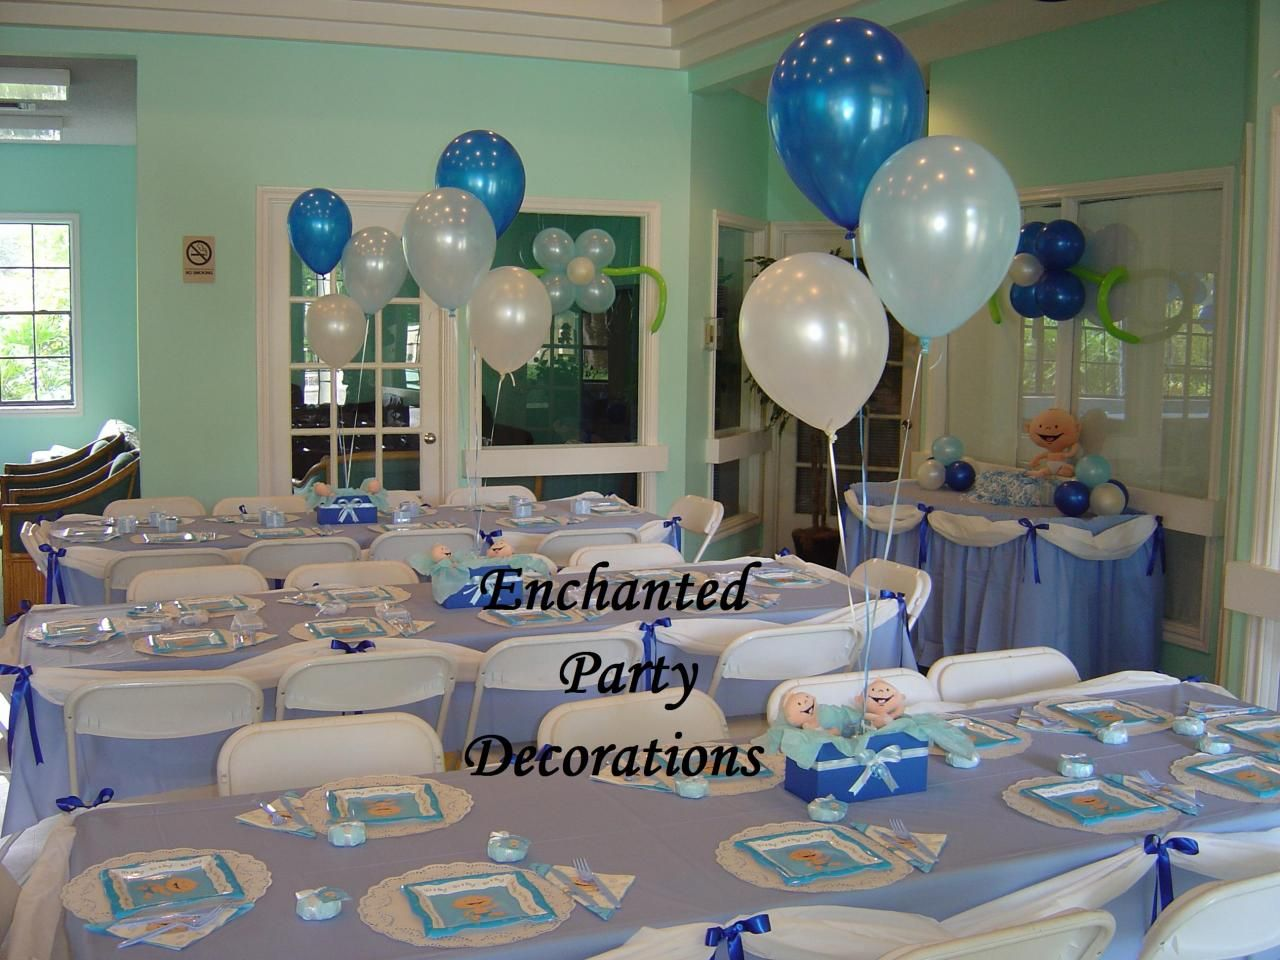 348 Best Boy Baby Shower Ideas Images On Pinterest Boy Baby Showers Parties And Shower Ideas